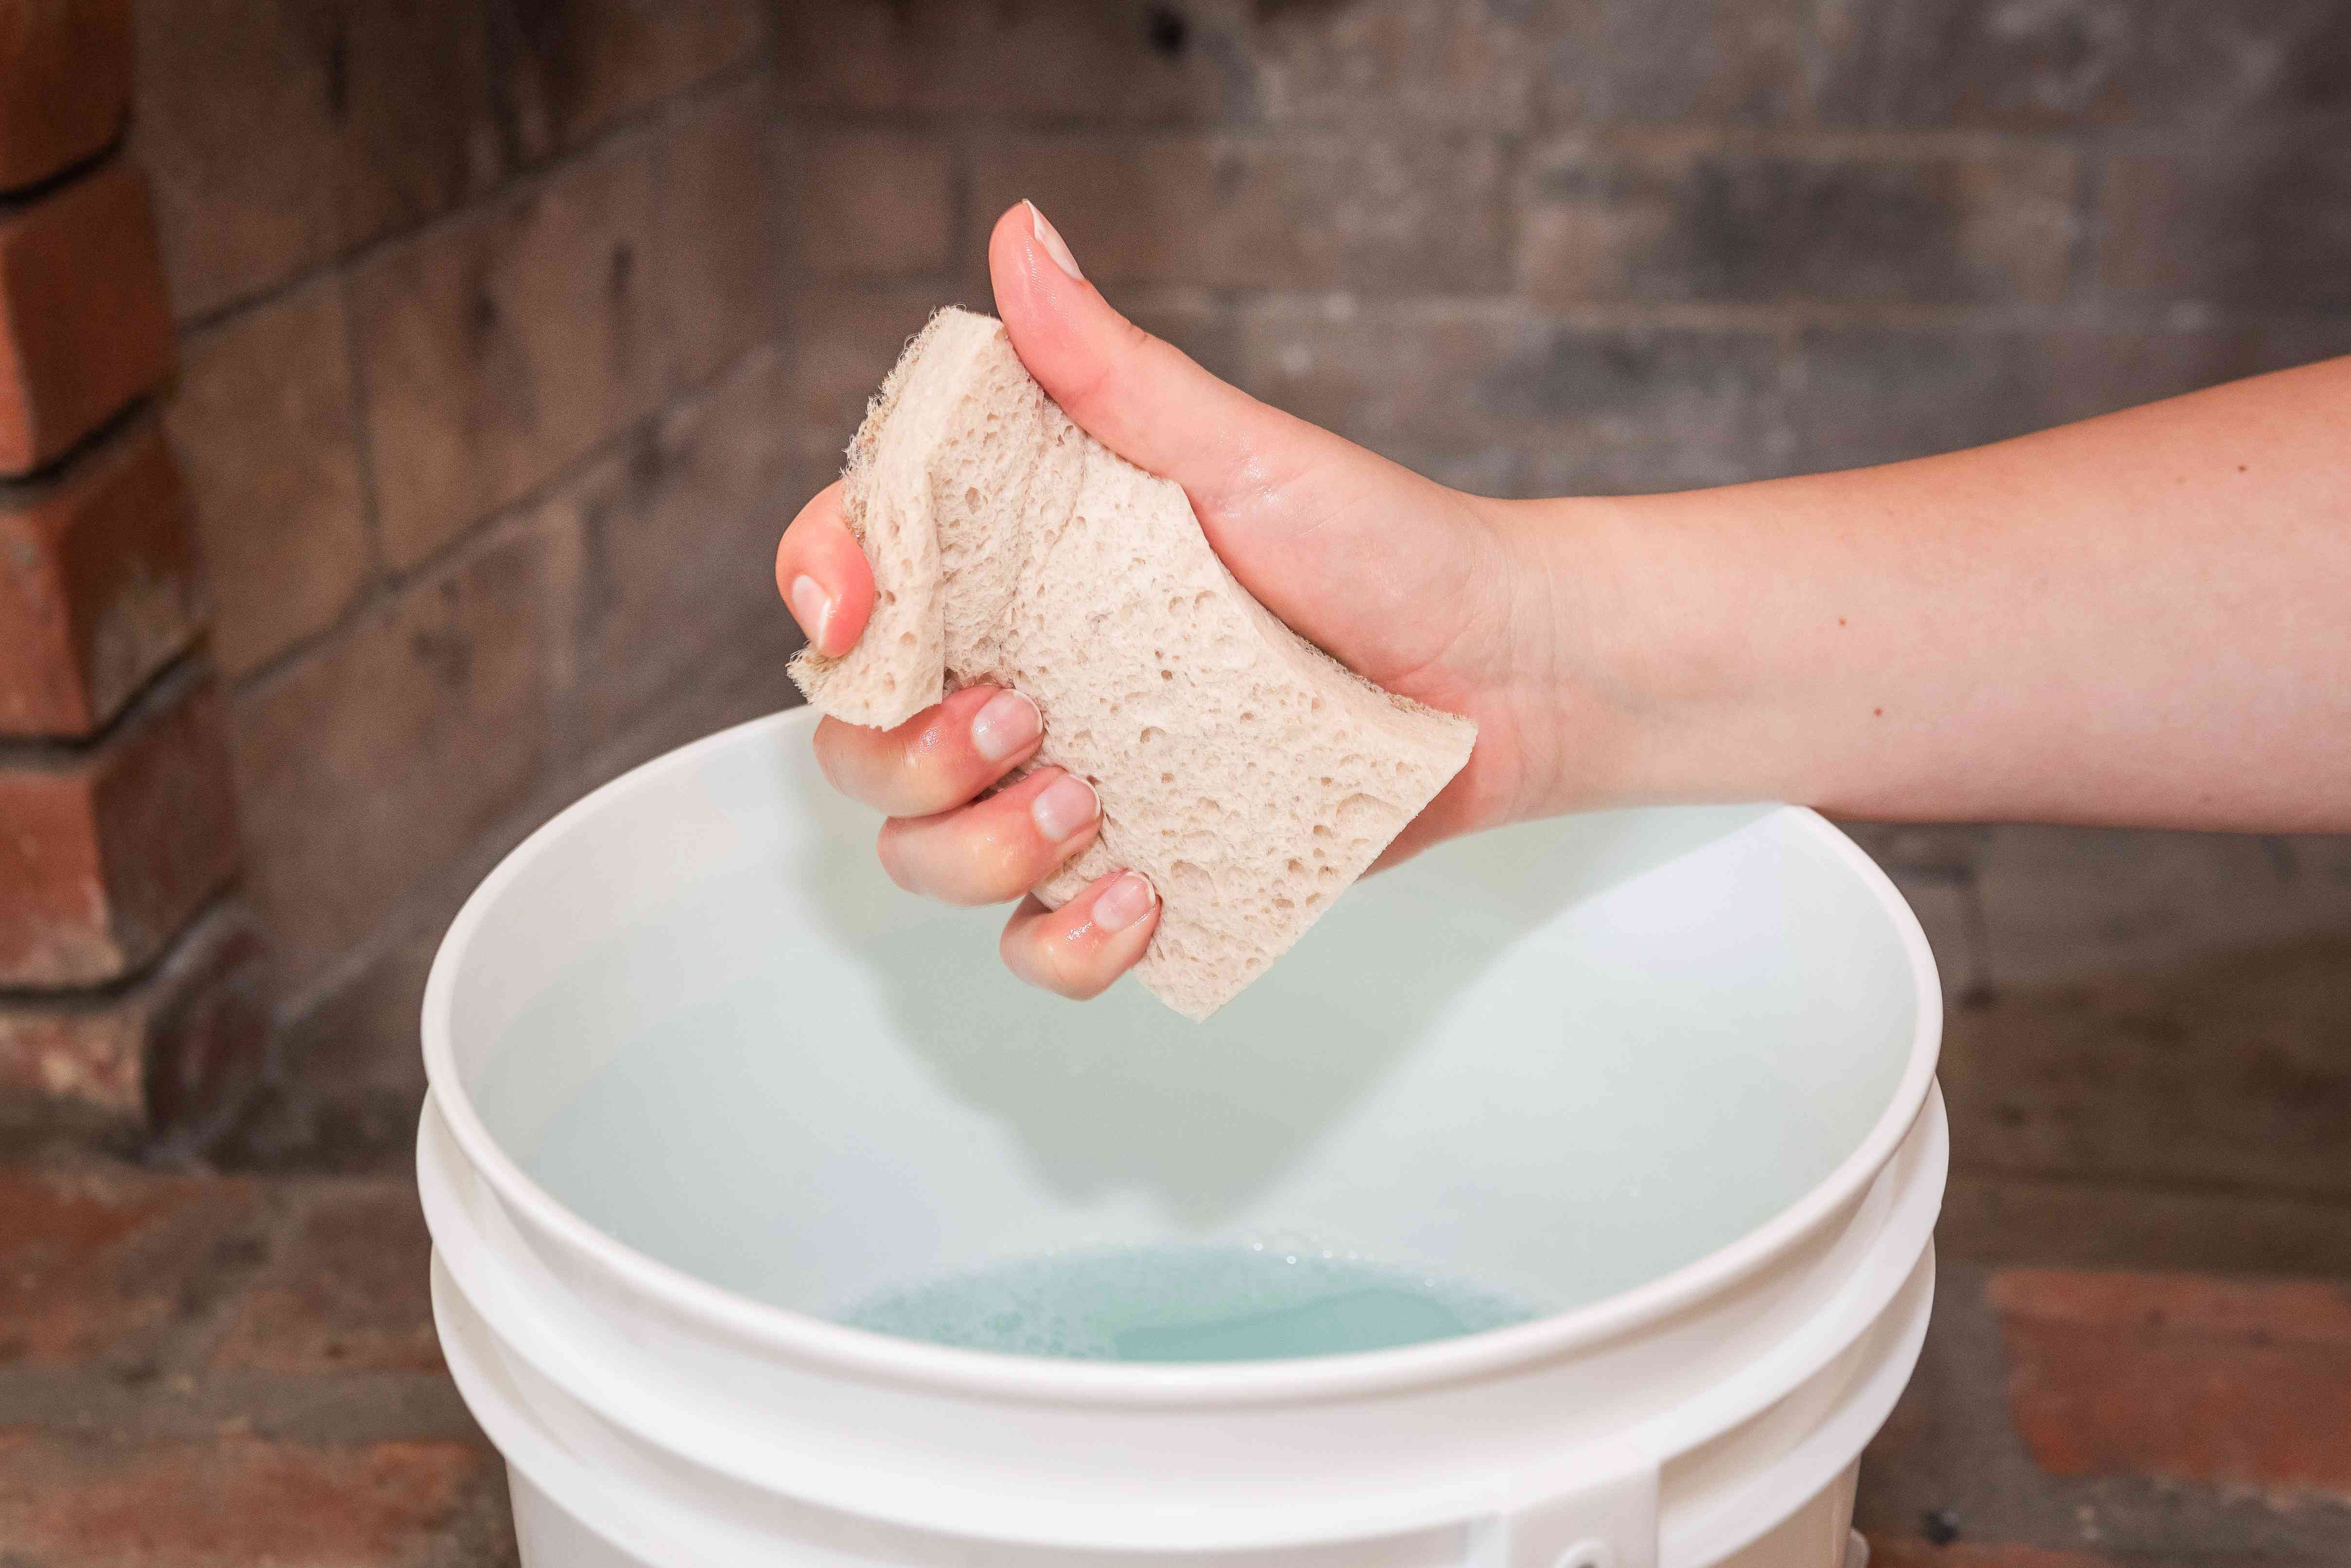 Sponge squeezed over bucket with water and vinegar solution to rinse fireplace